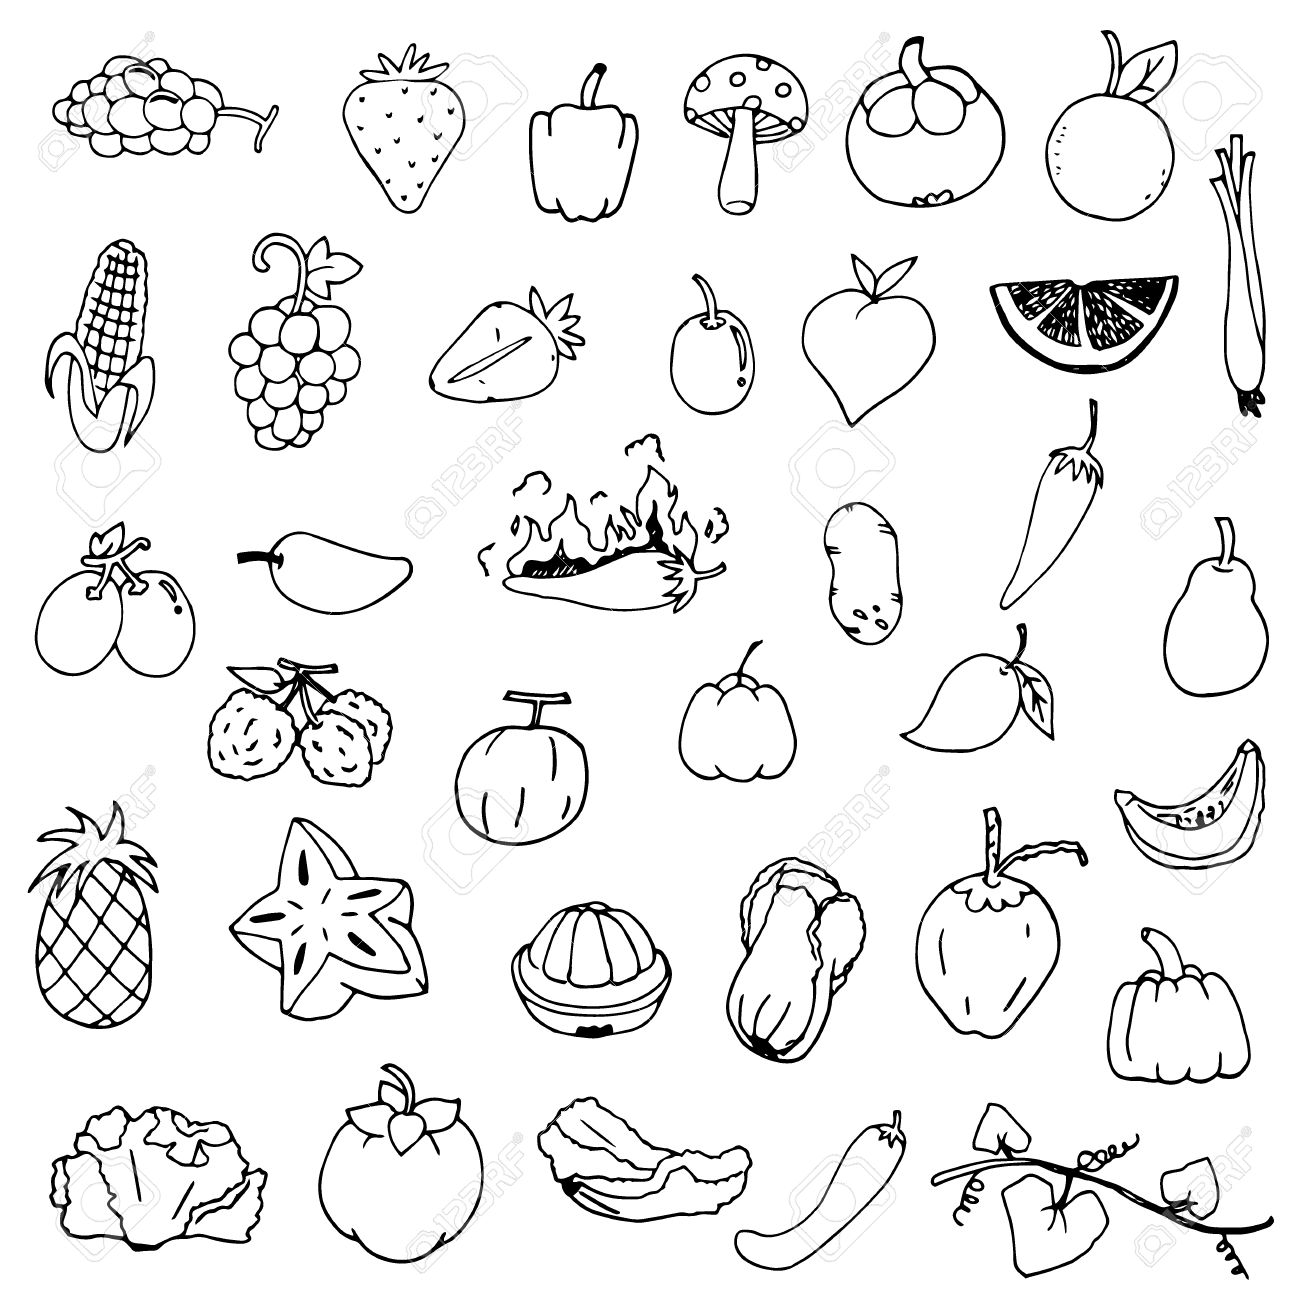 fruits and vegetables sketch vector in black doodle on white